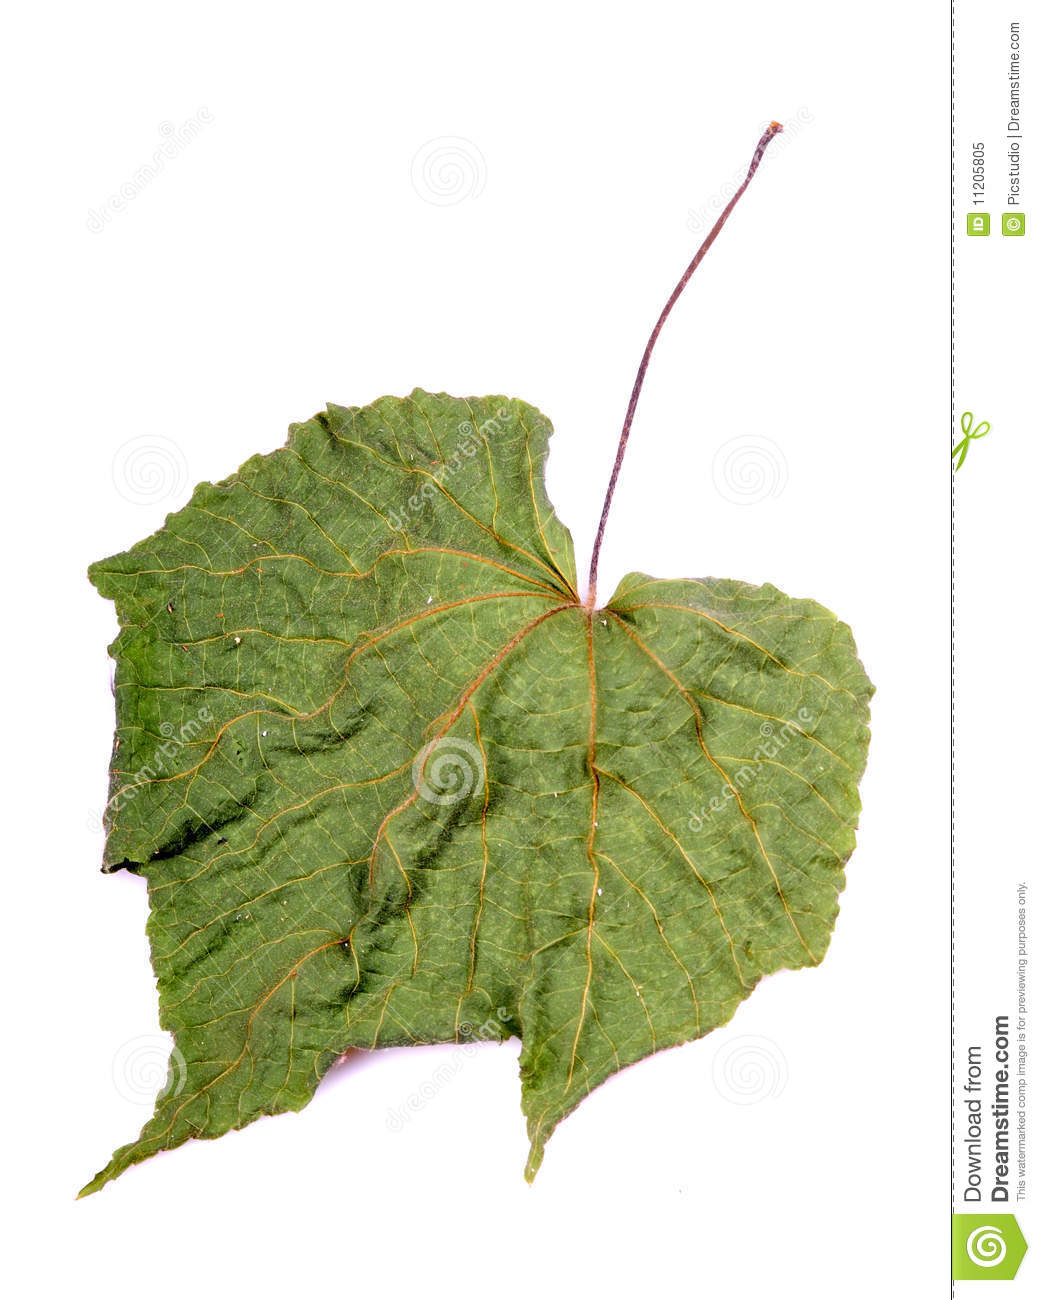 Dry leaf diagram stock image image of closeup nature 11205805 dry leaf diagram pooptronica Choice Image